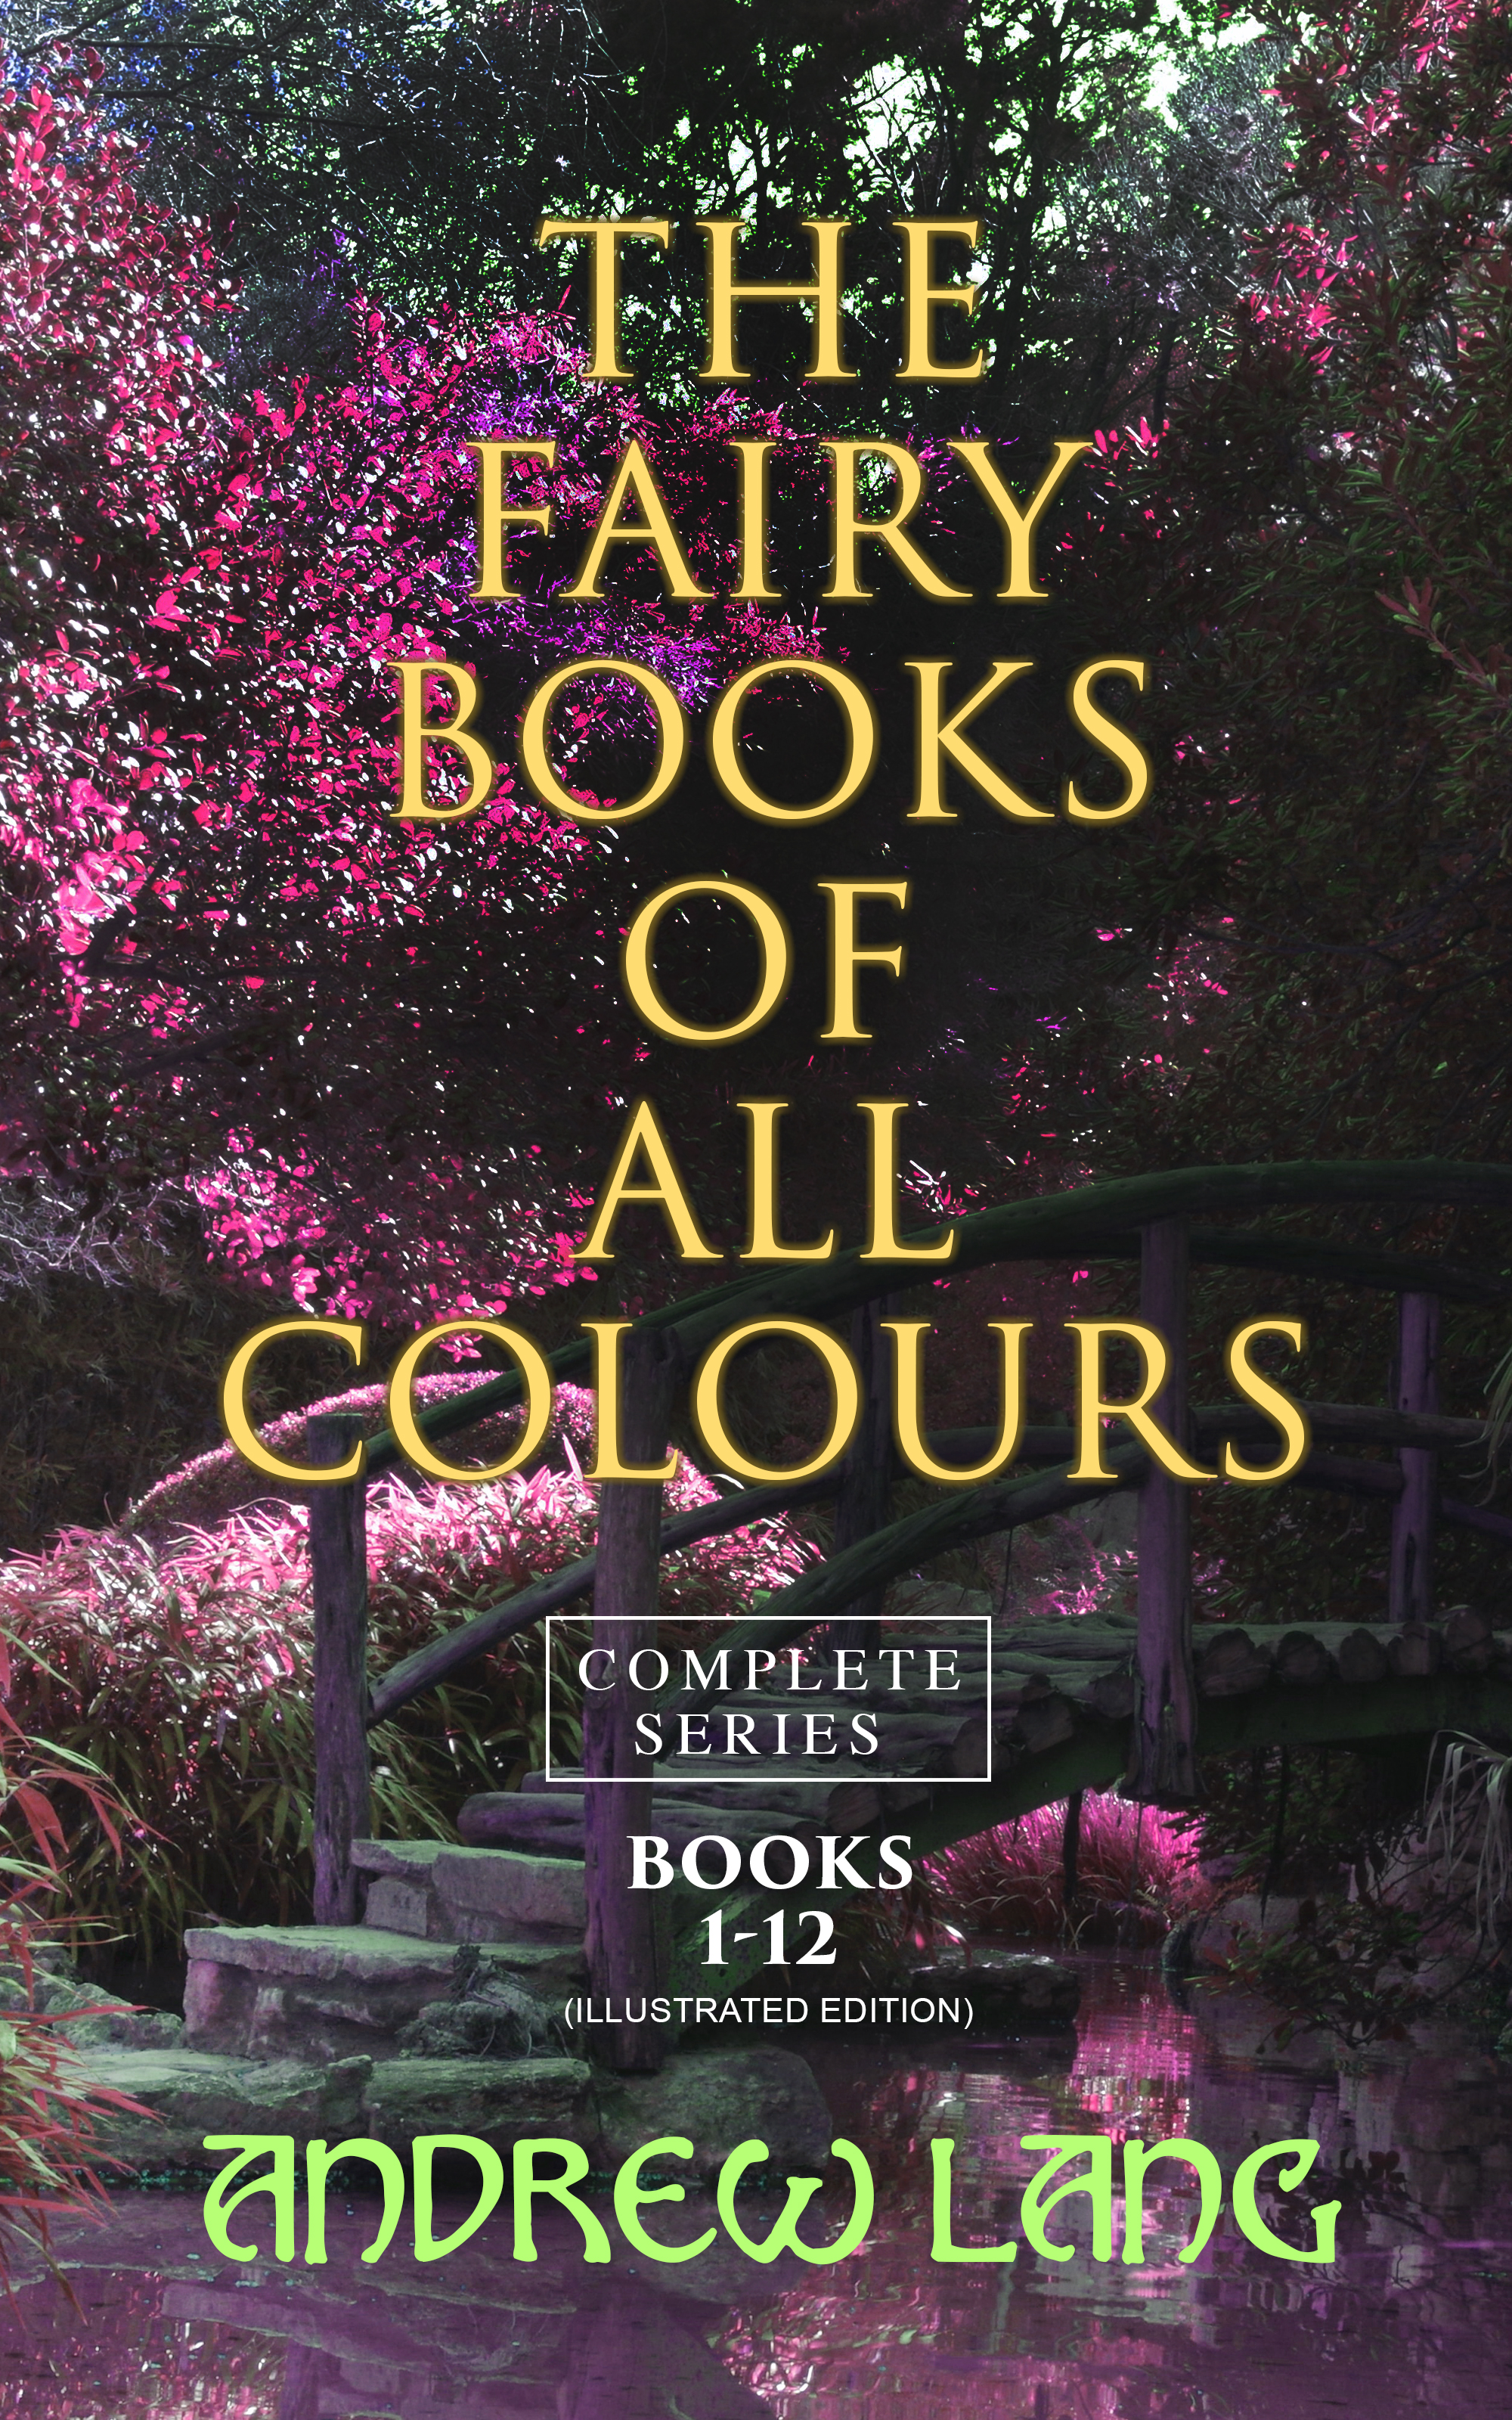 Andrew Lang The Fairy Books of All Colours - Complete Series: Books 1-12 (Illustrated Edition) the complete book of the flower fairies